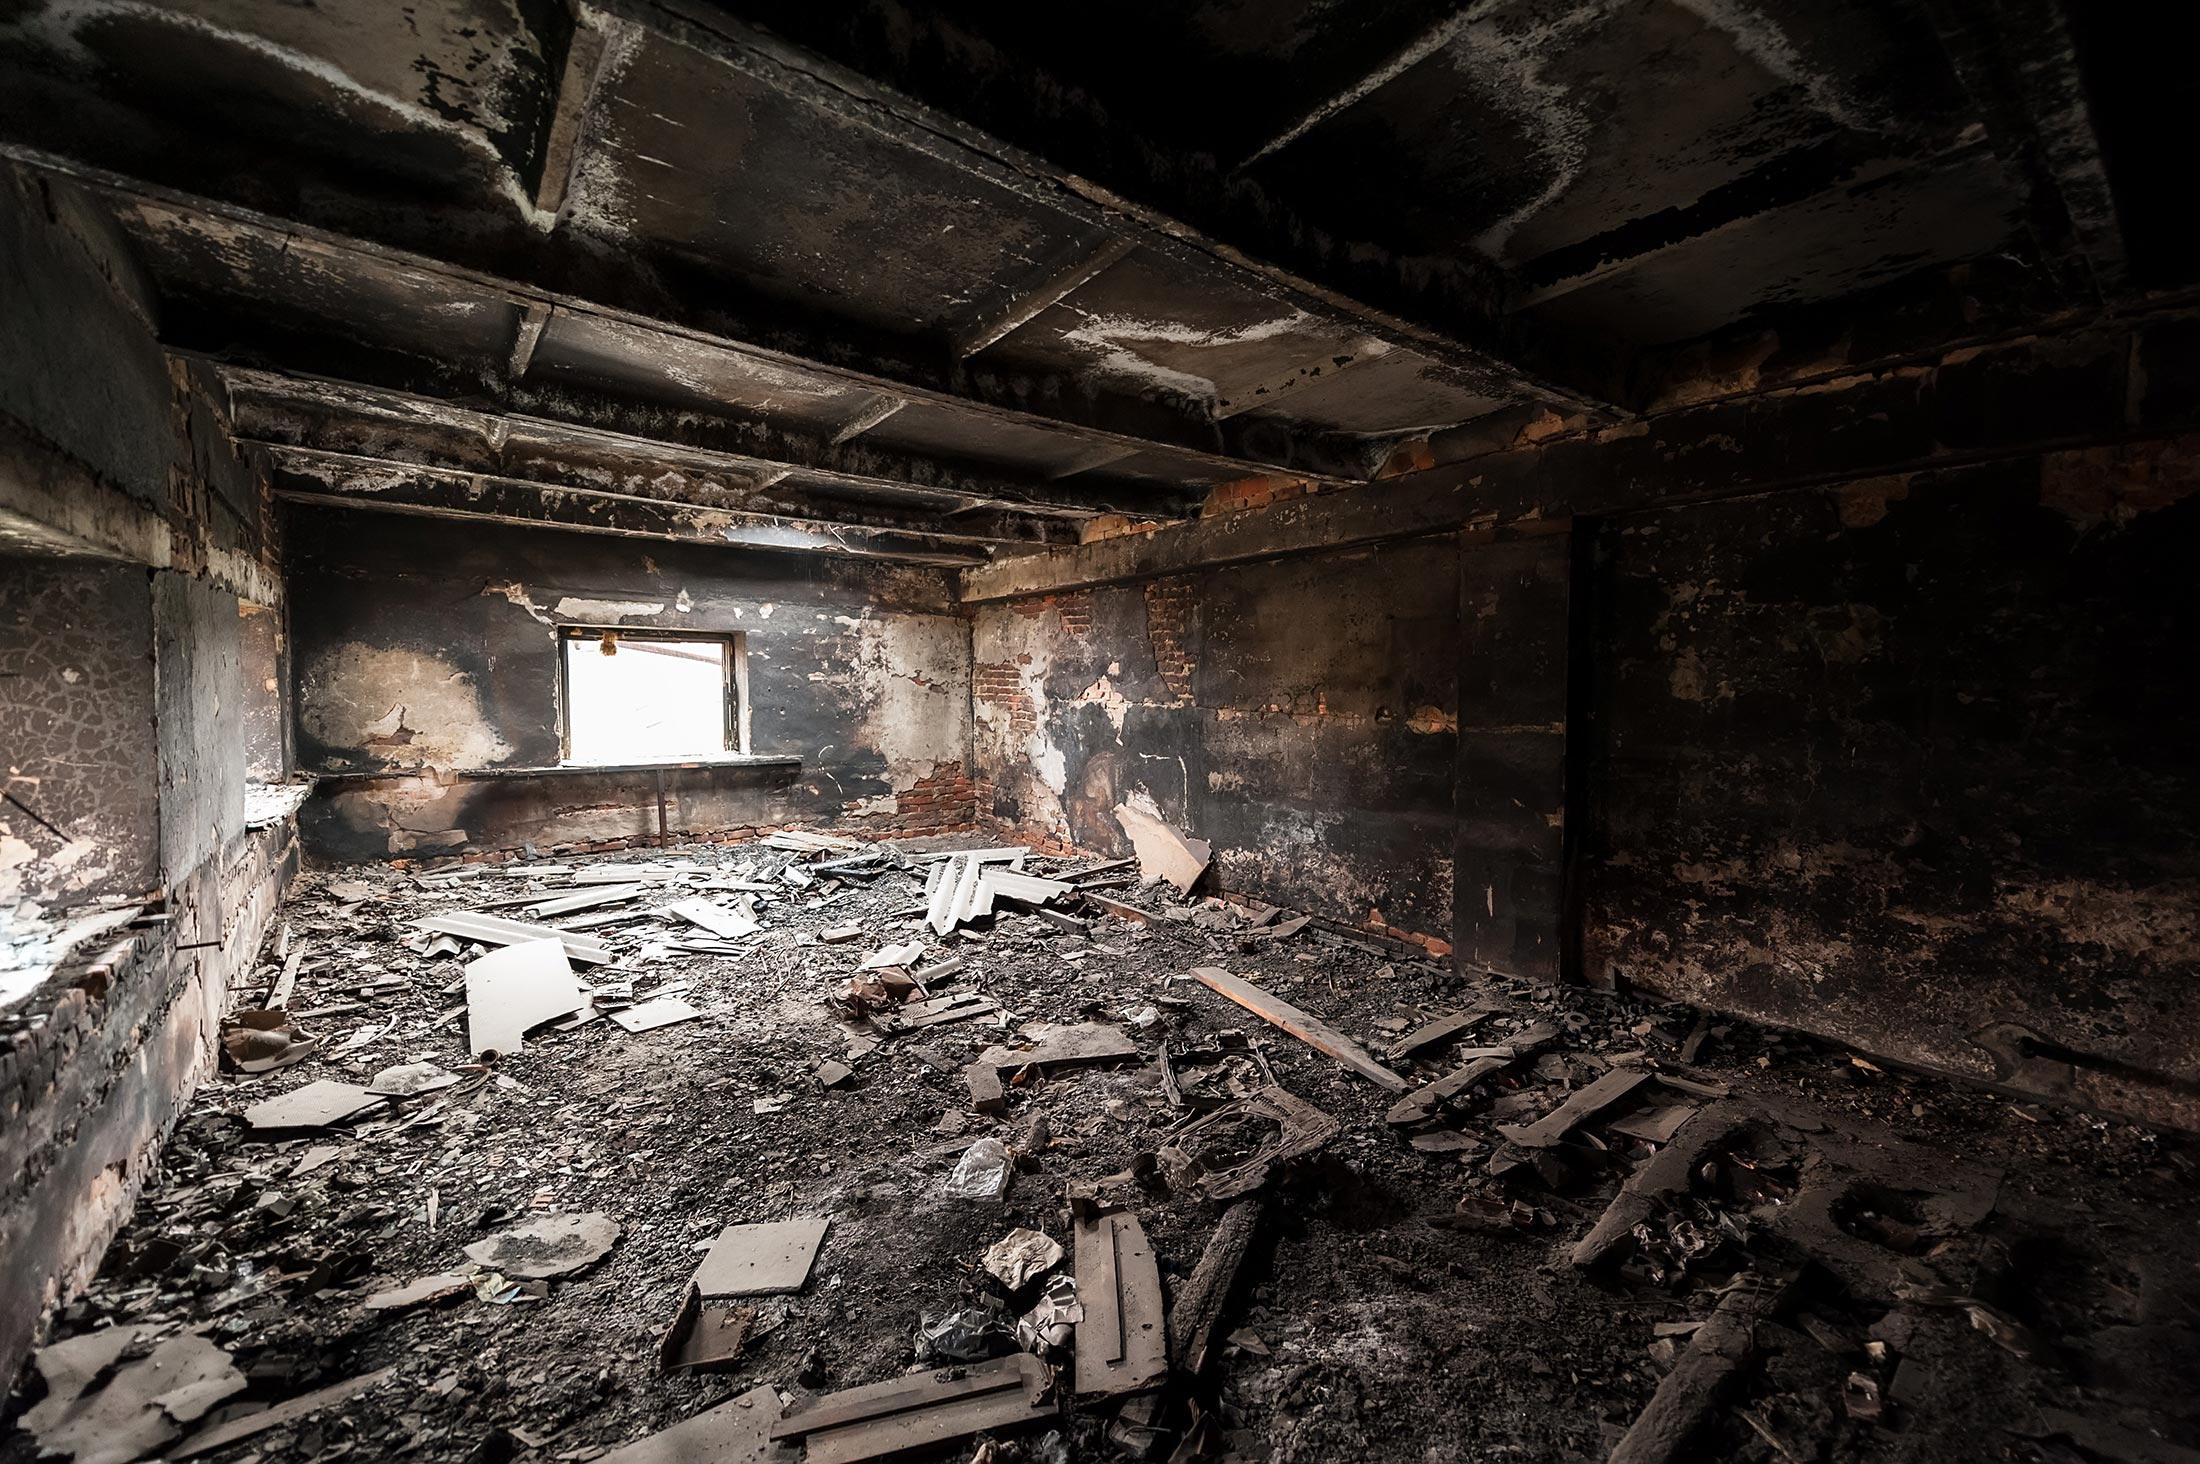 EVIDENCE RETRIEVAL - Our investigators routinely collect and main artifacts from fire and explosion scenes. Pyr-Tech maintains an on-site, secure evidence storage facility and laboratory.